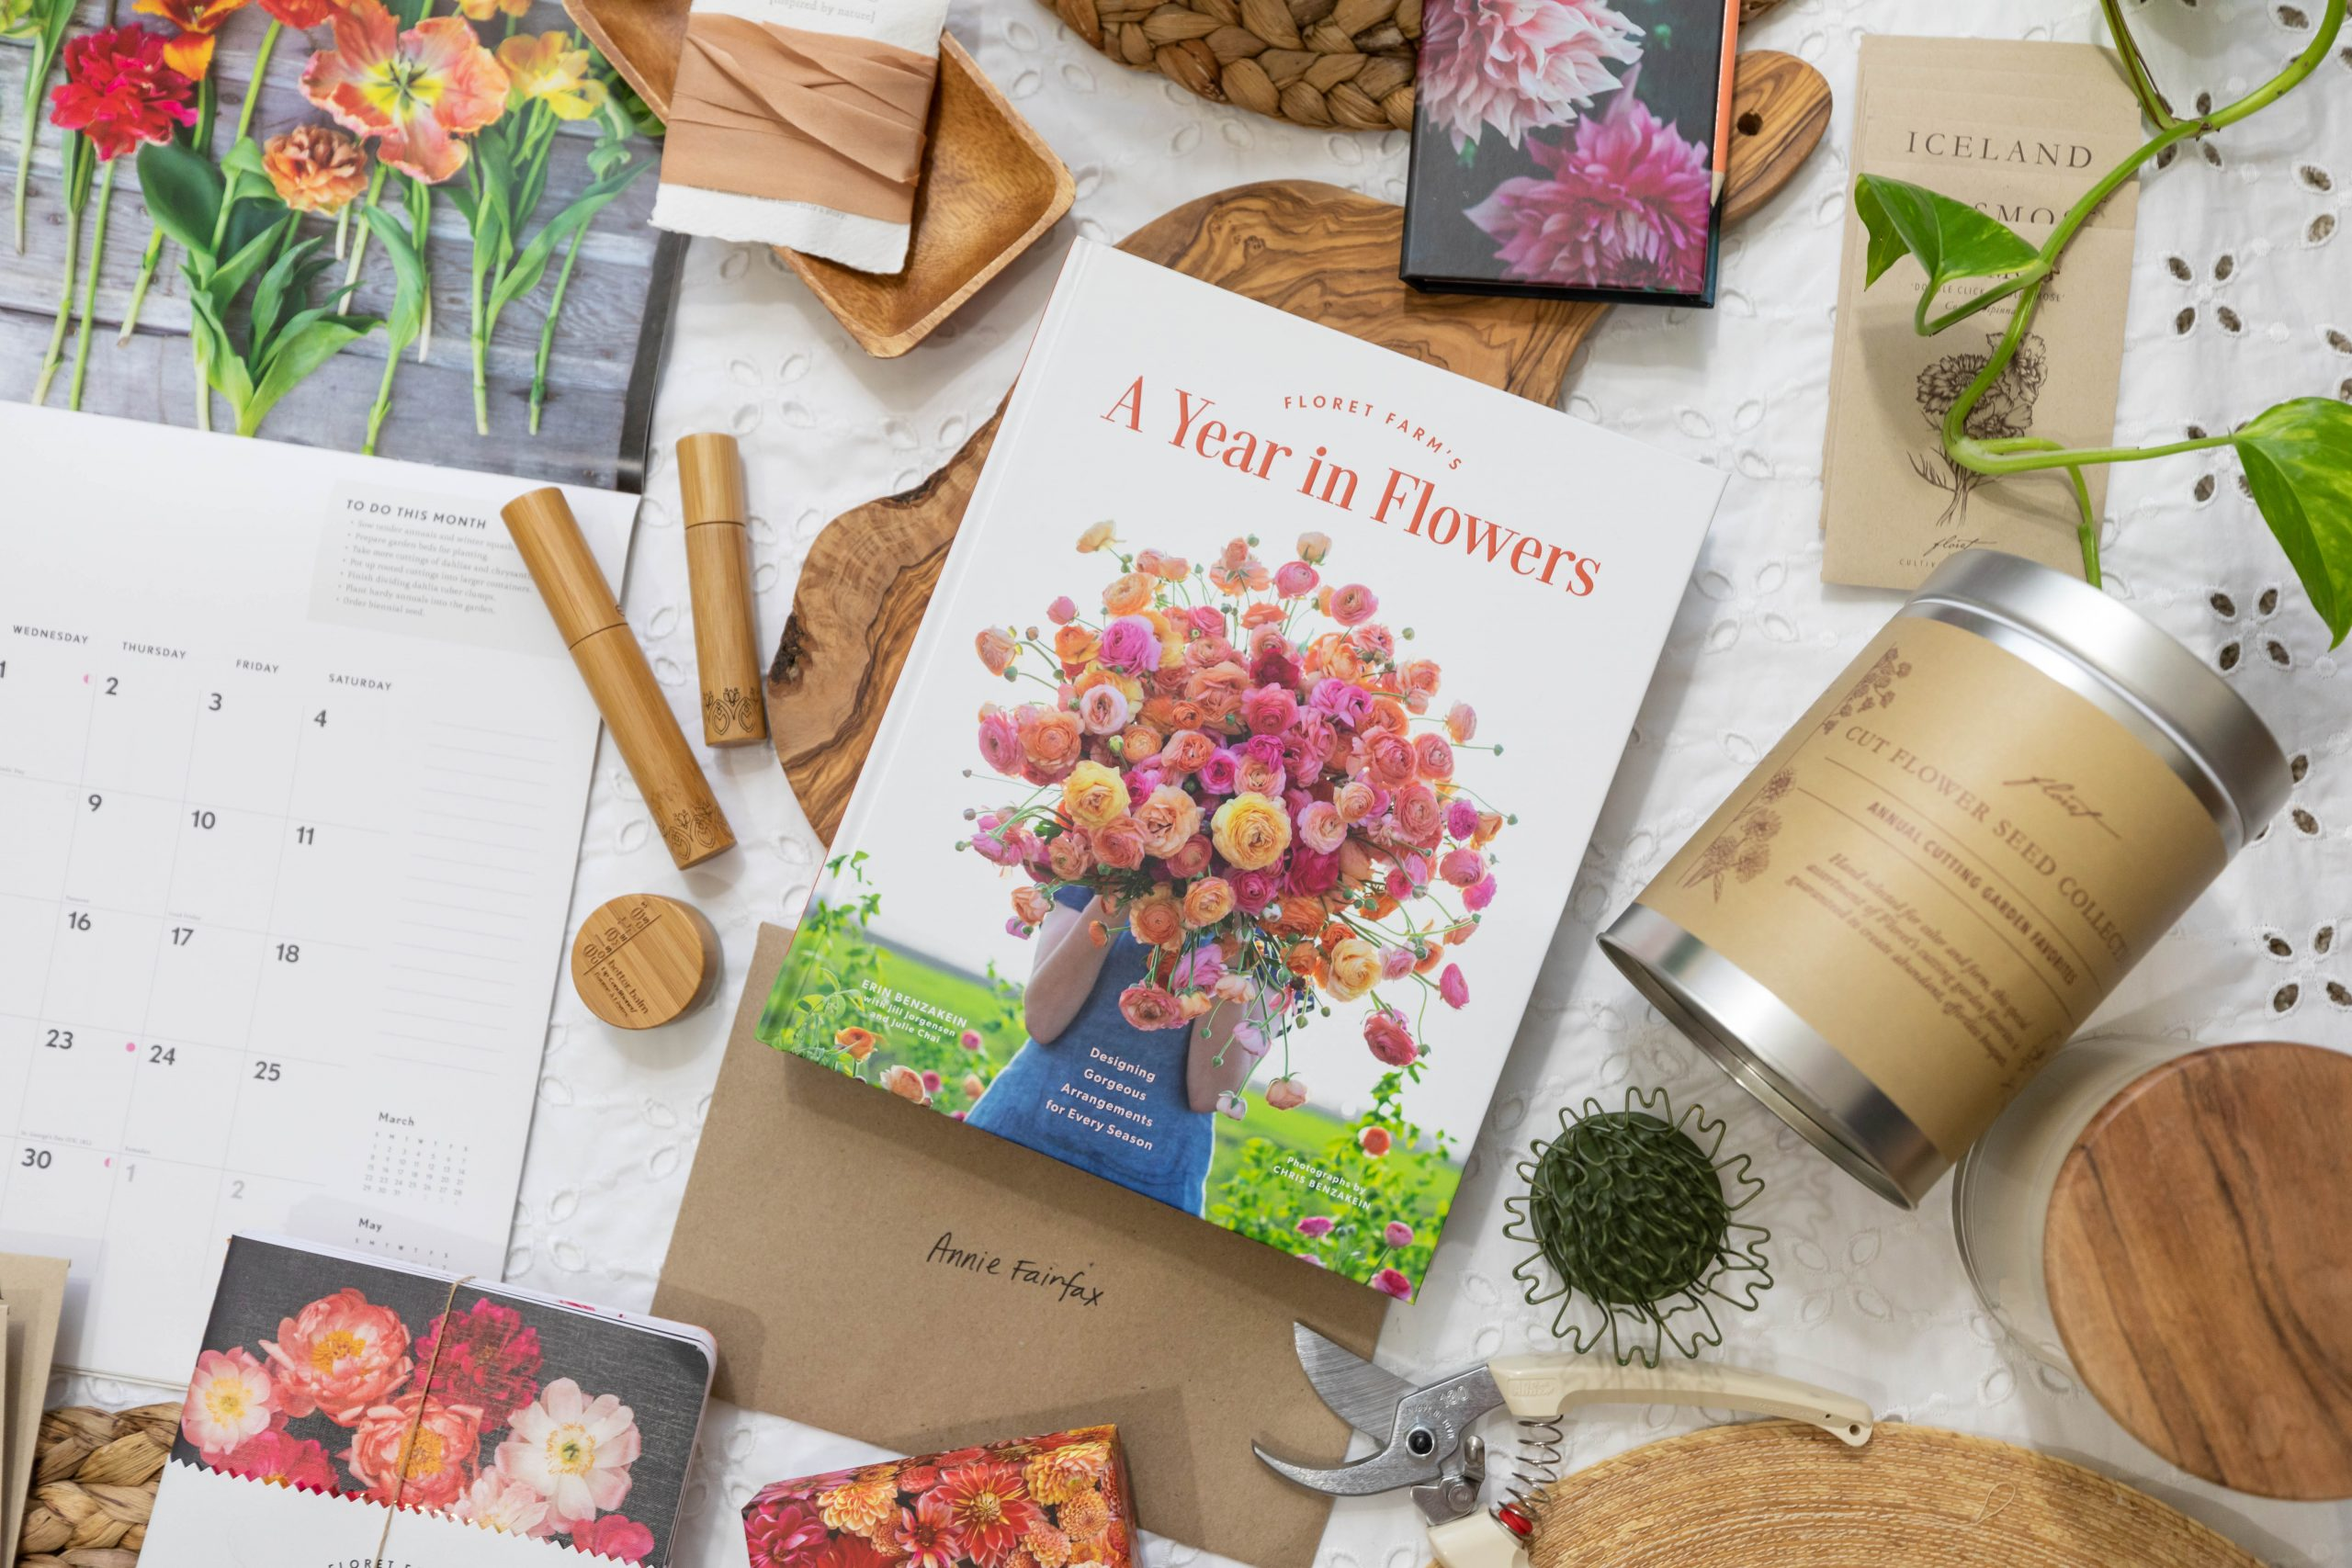 A Year in Flowers by Floret Farms' Erin Benzakein Floral Arranging Bouquet Making Ikebana